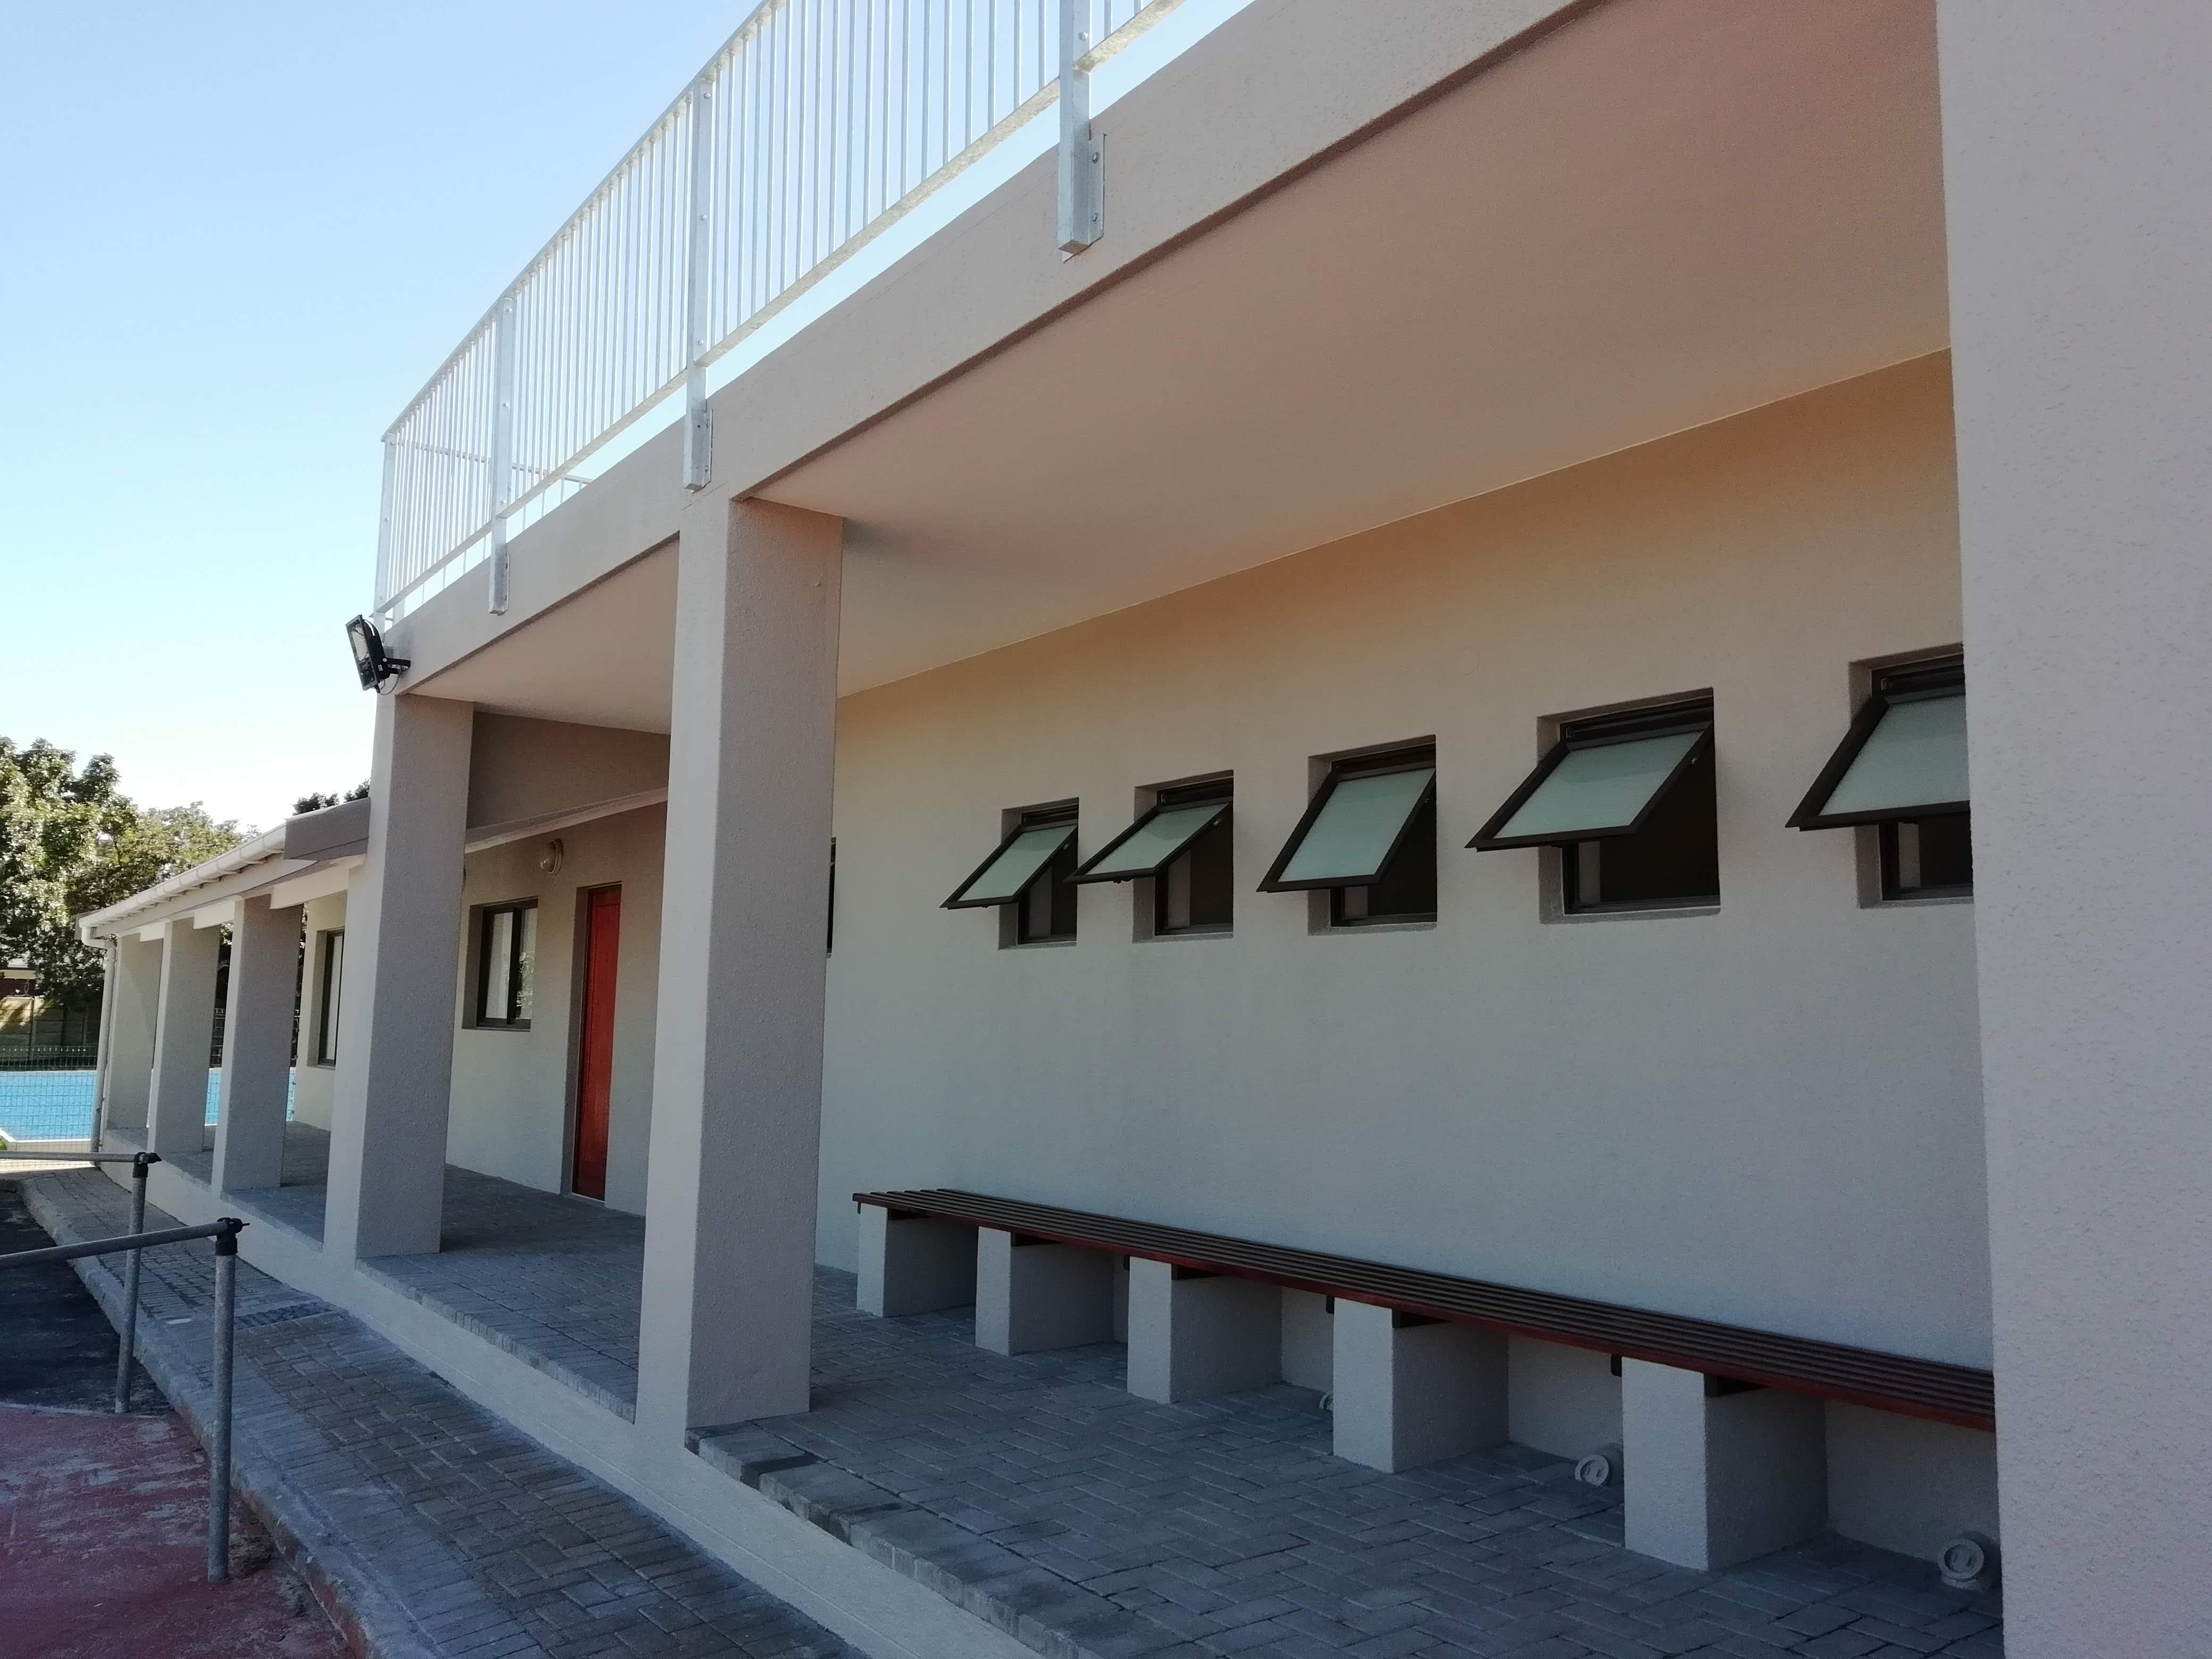 Brackenfell Primary, Additions, Kwali Mark Construction